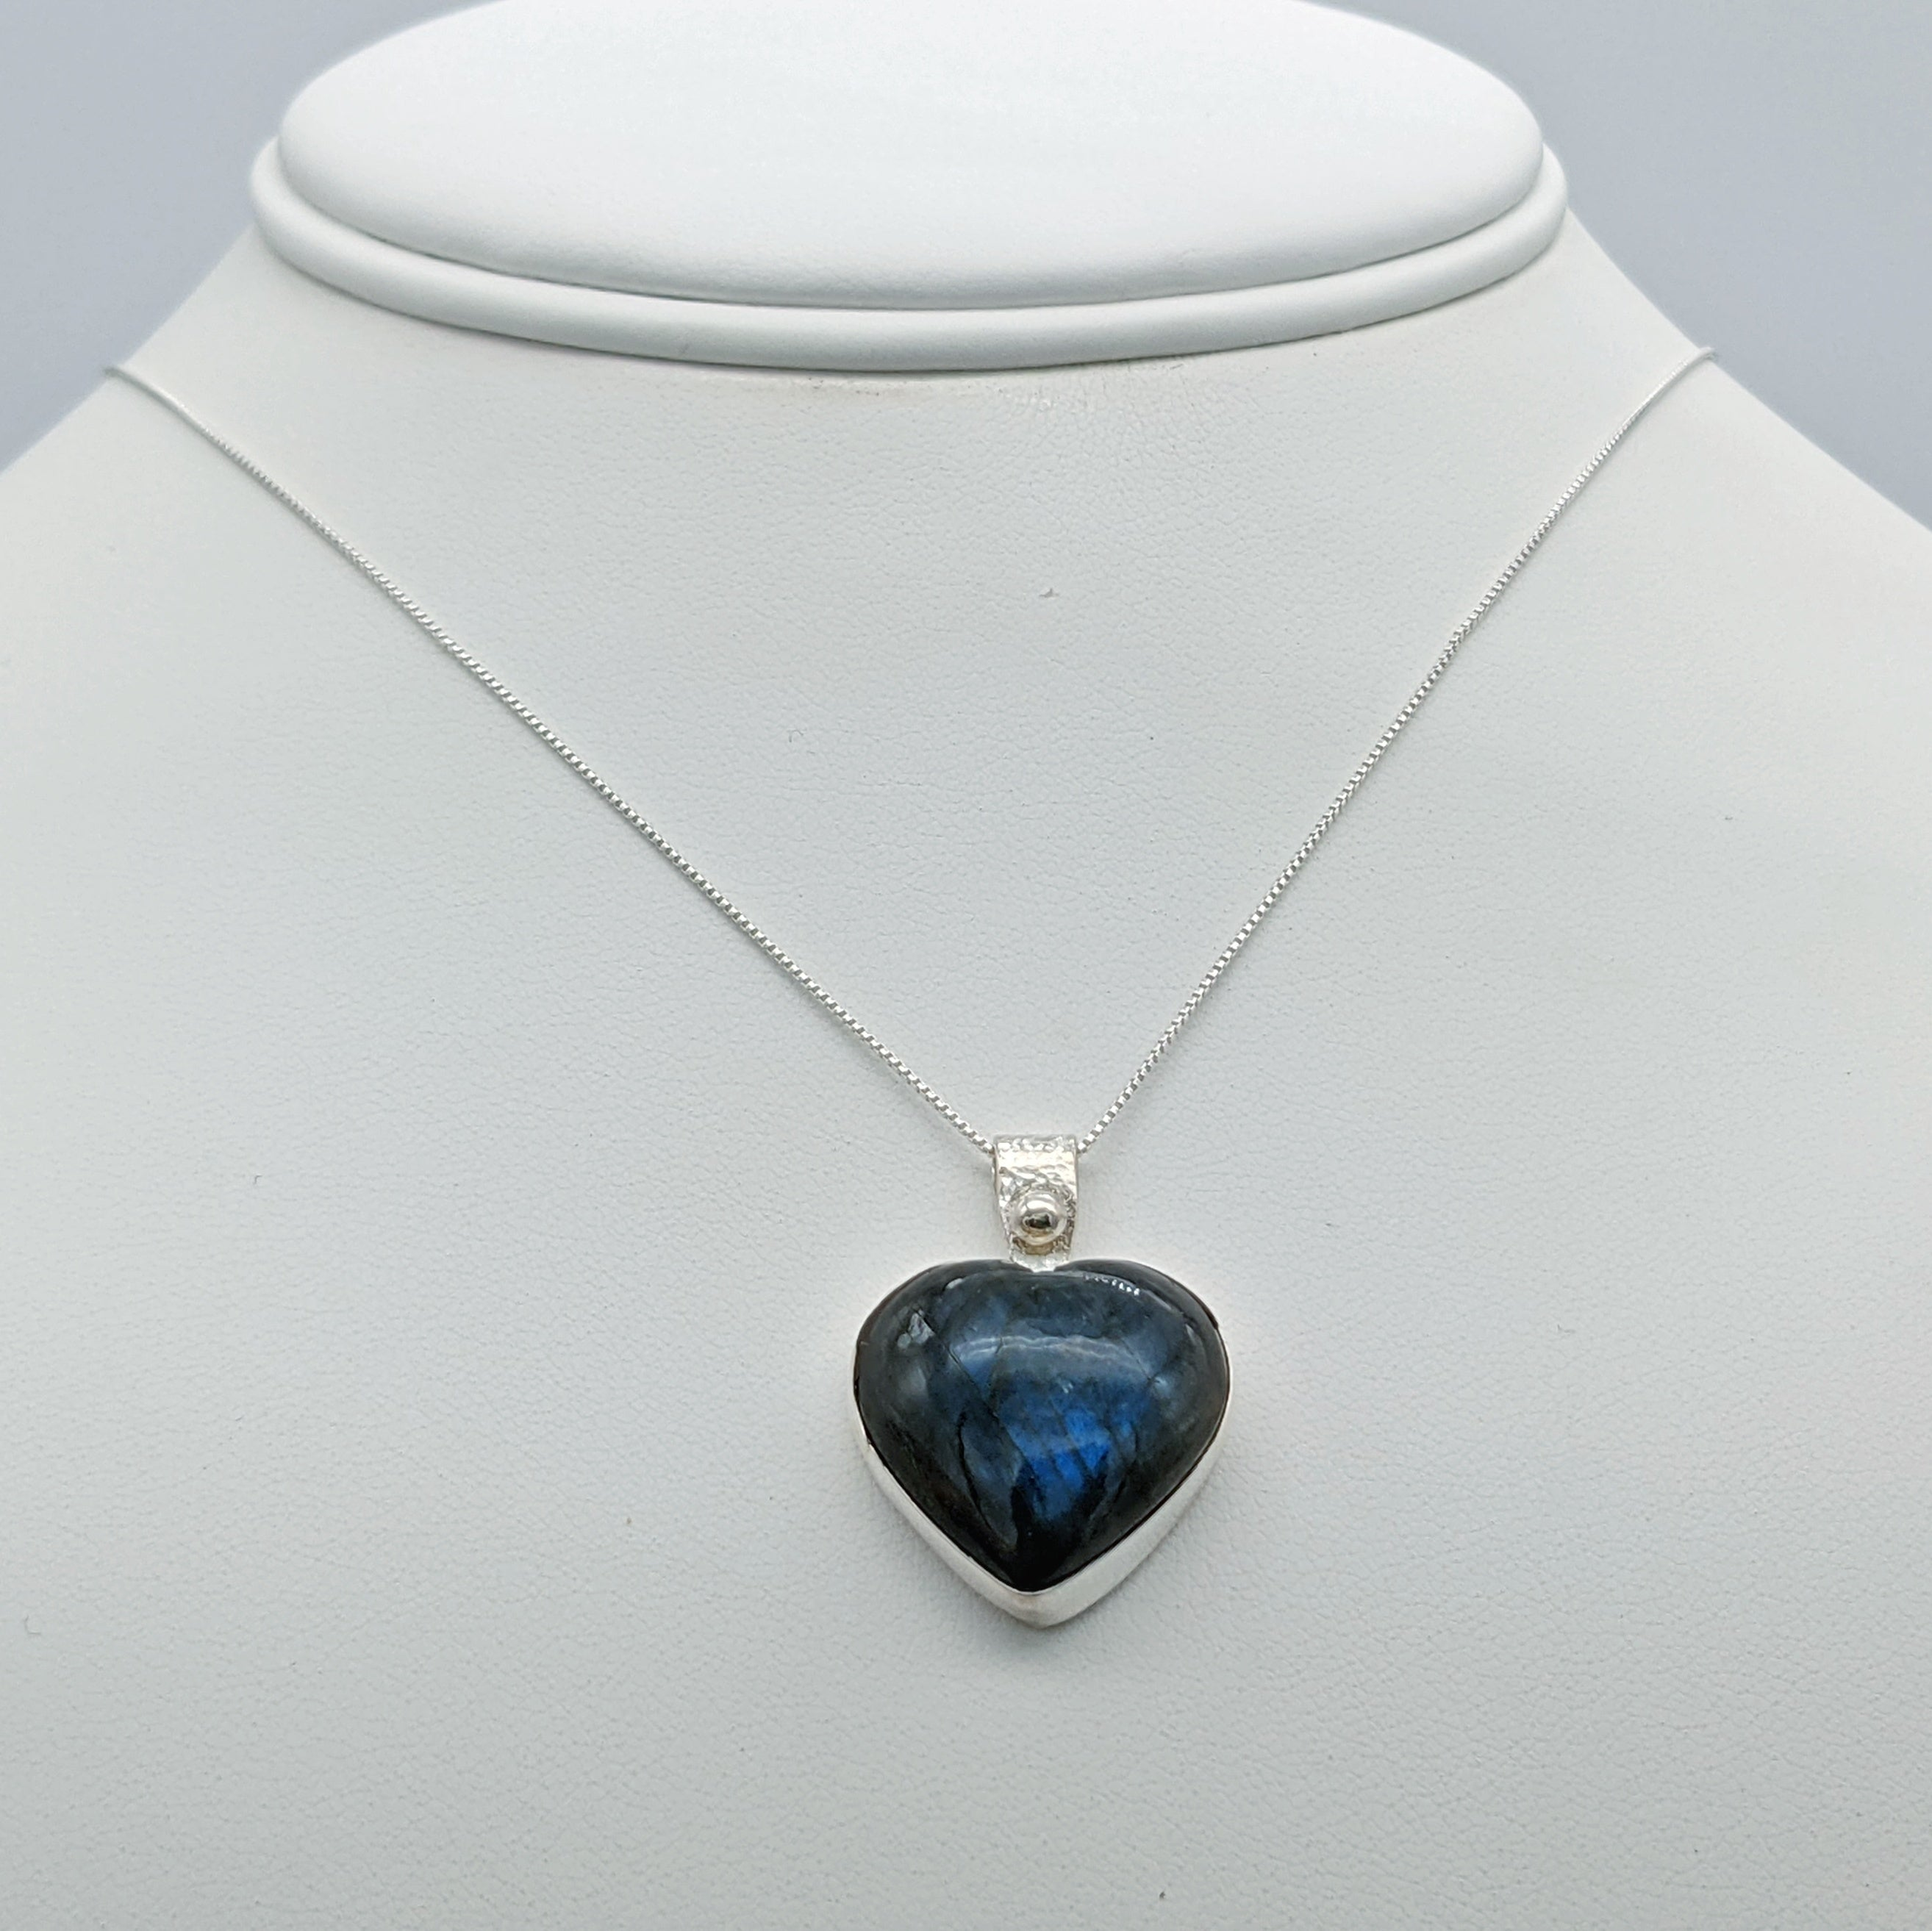 Blue Labradorite Heart Shaped Necklace in Sterling Silver - Flashy Blue Gemstone Pendant